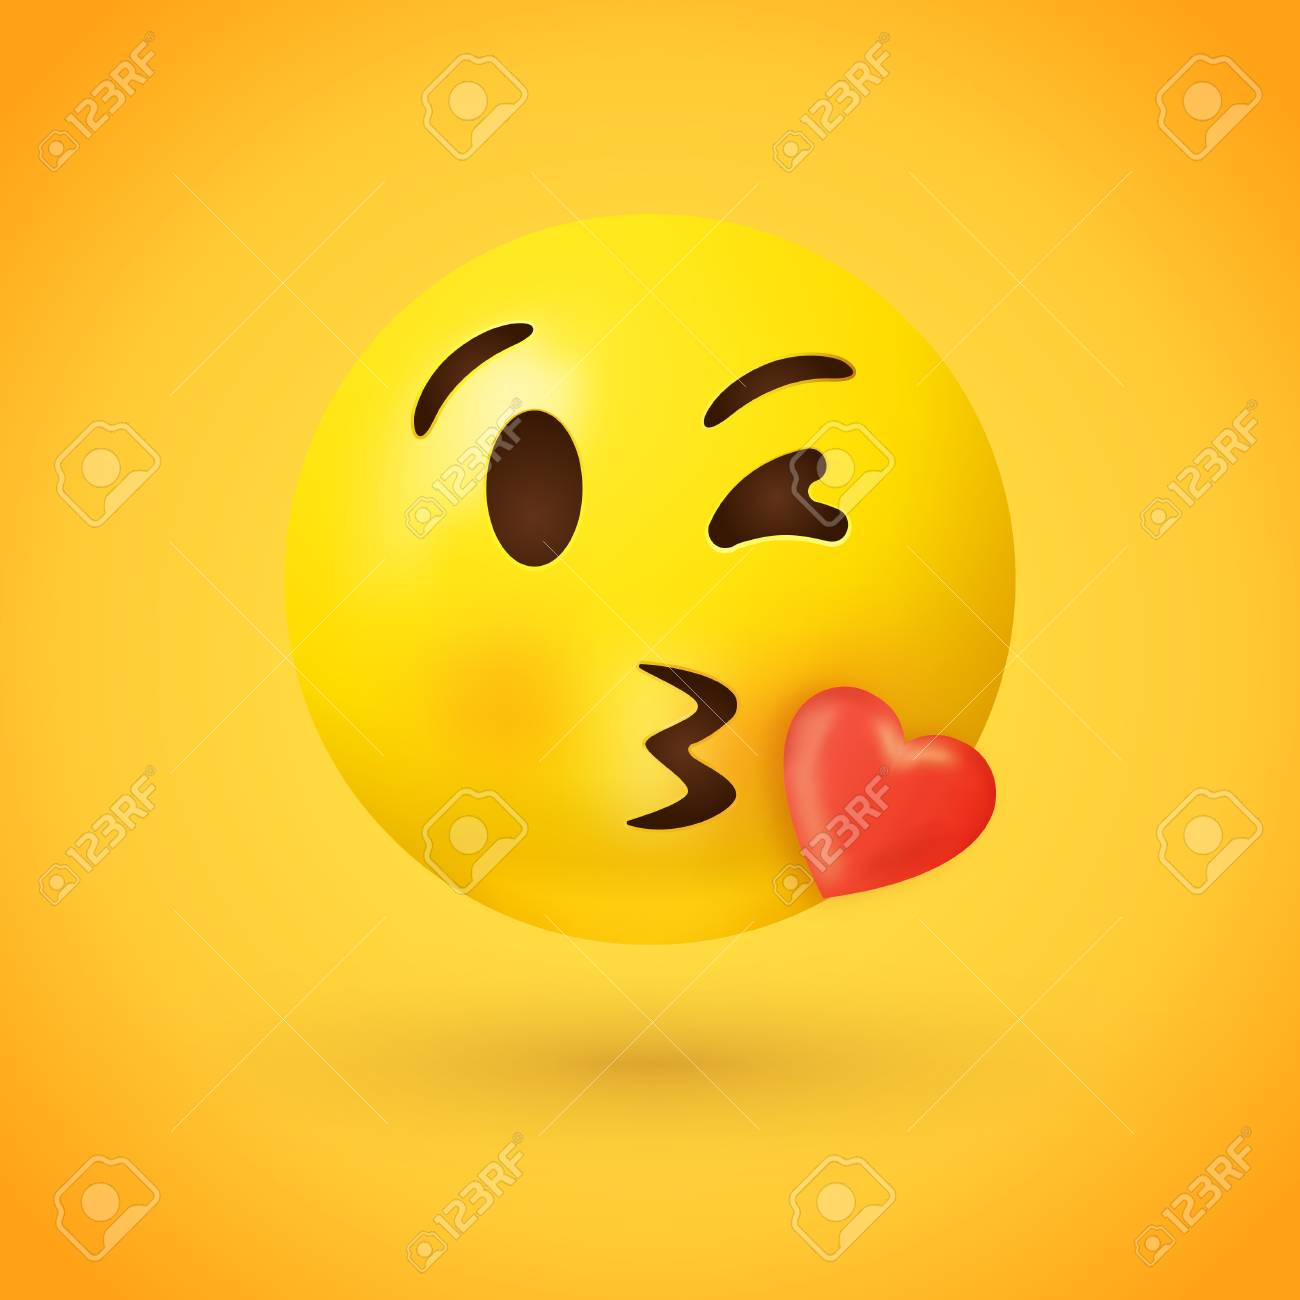 Kissing face emoji with red heart on yellow background - kiss